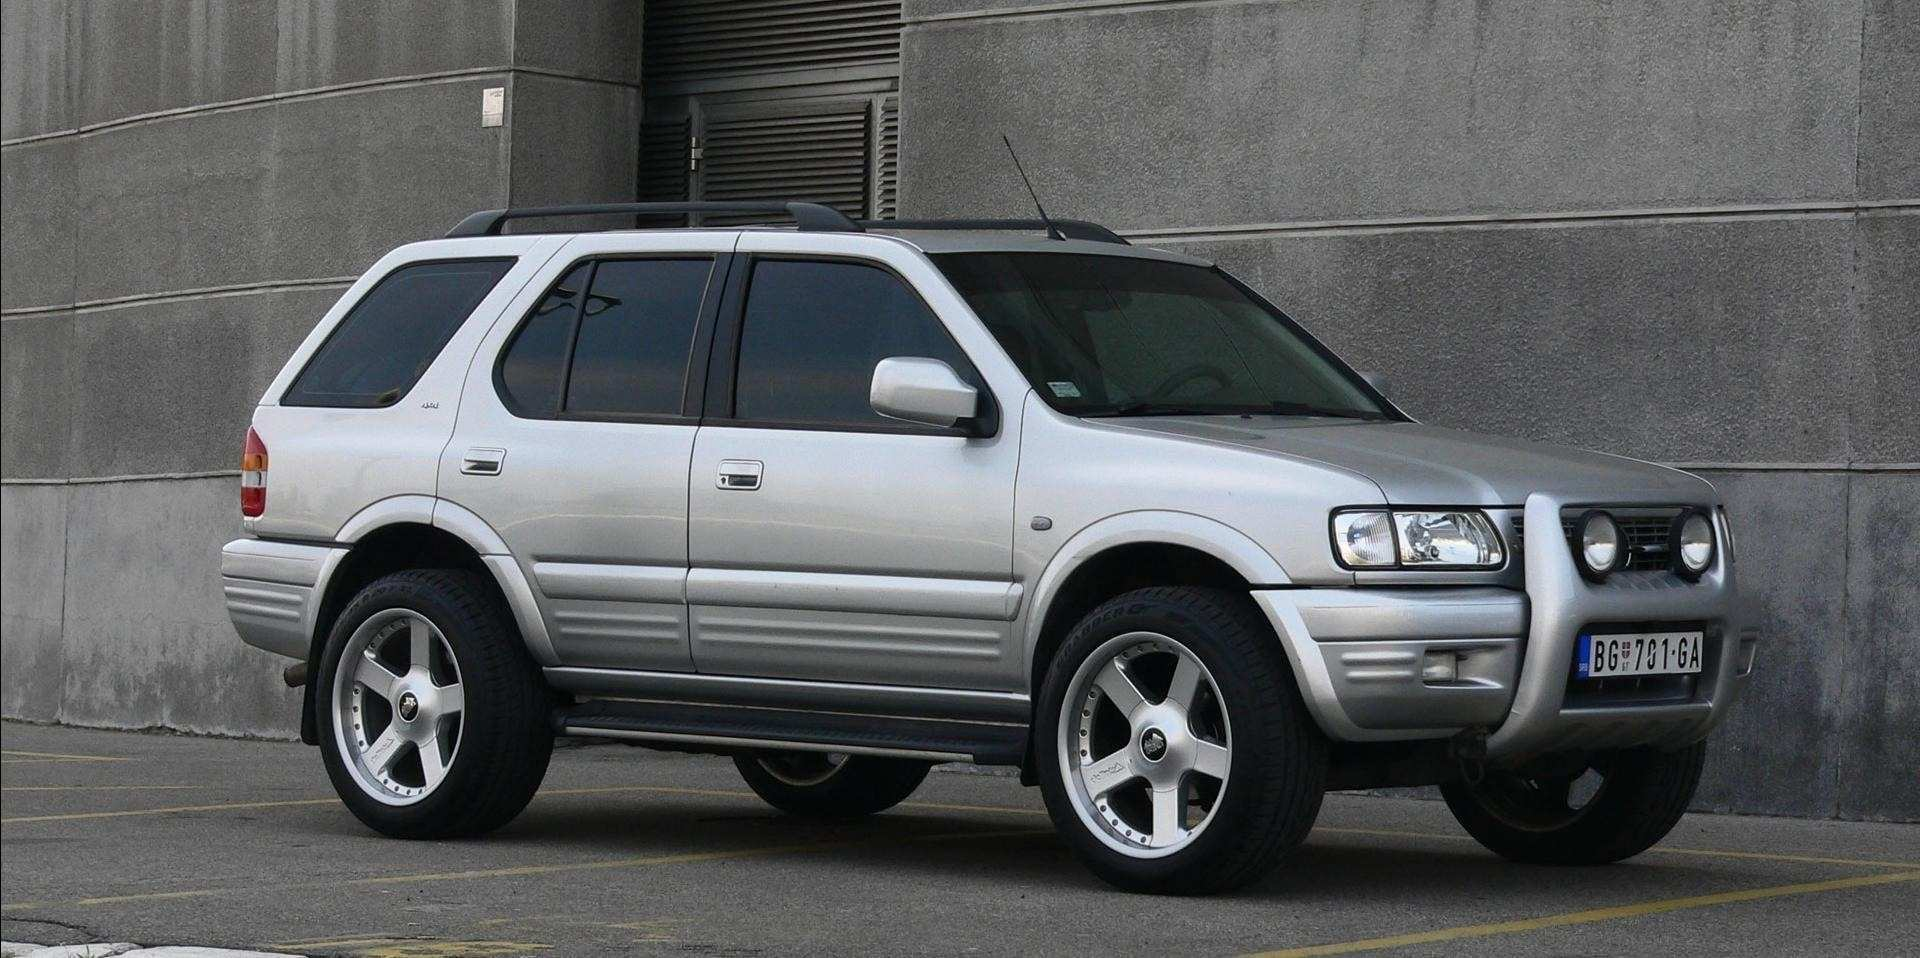 84 Best Review 2019 Isuzu Trooper Wallpaper by 2019 Isuzu Trooper